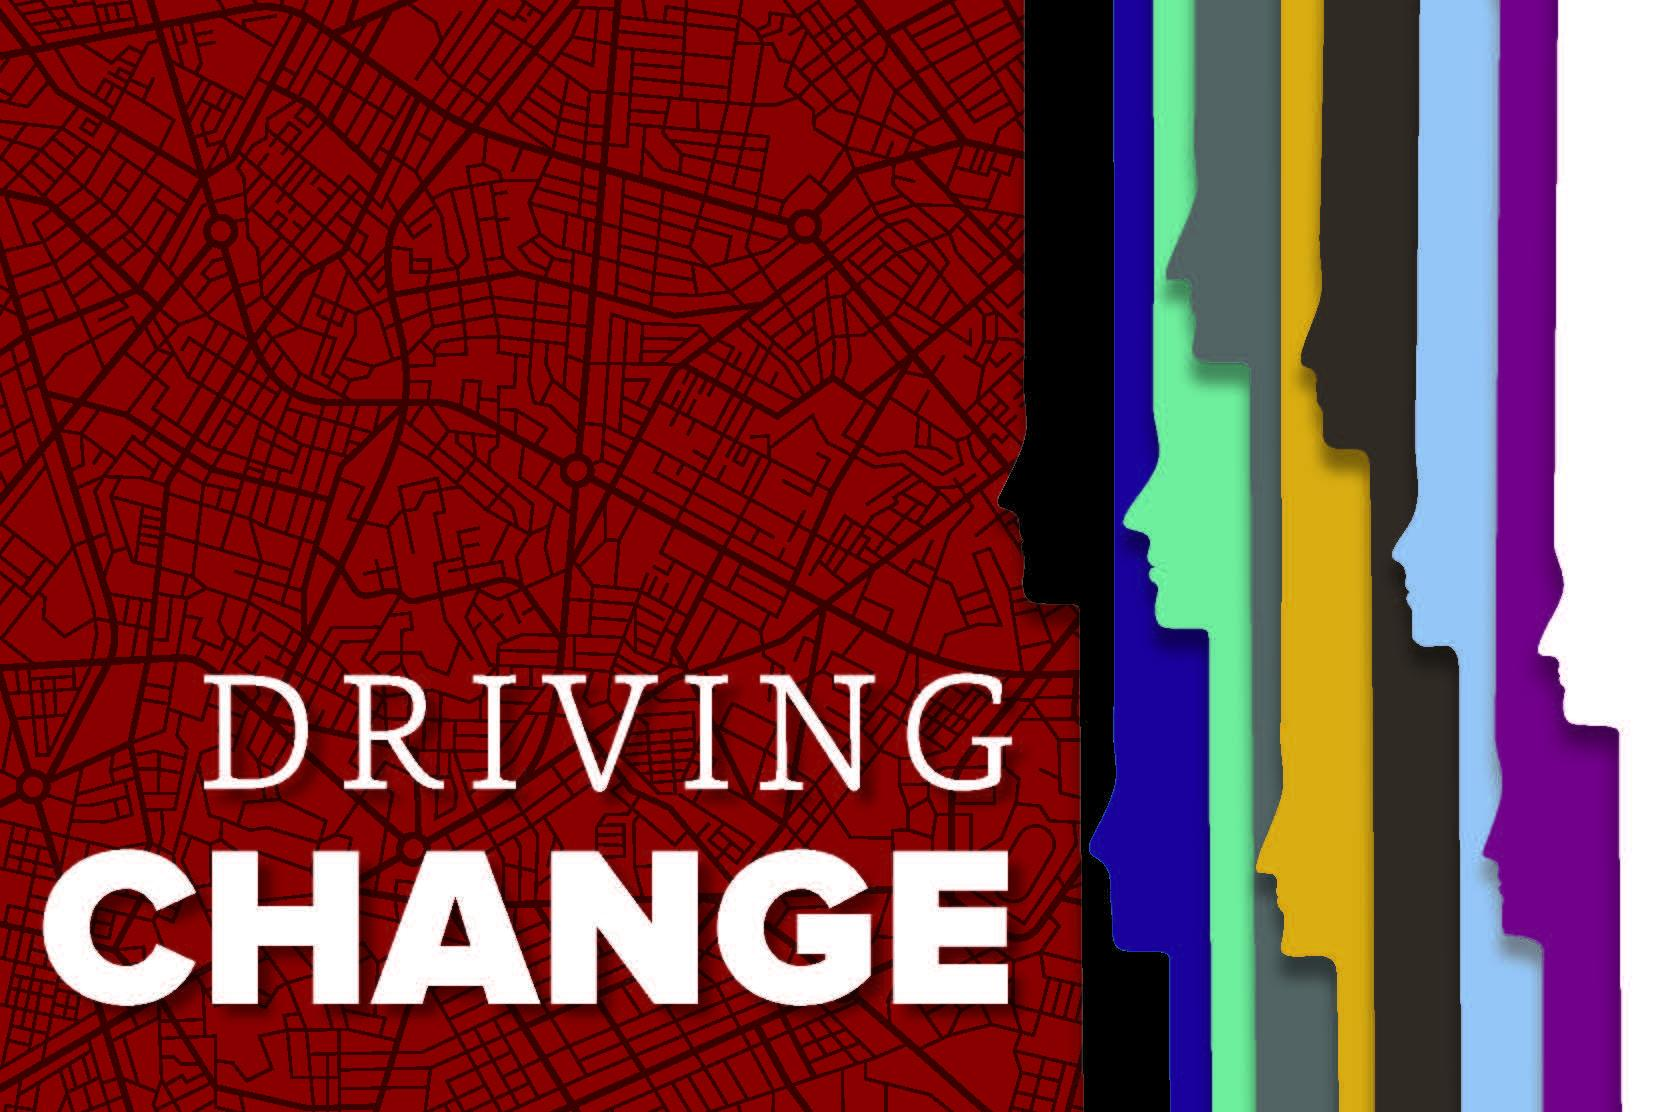 driving change with colorful faces.